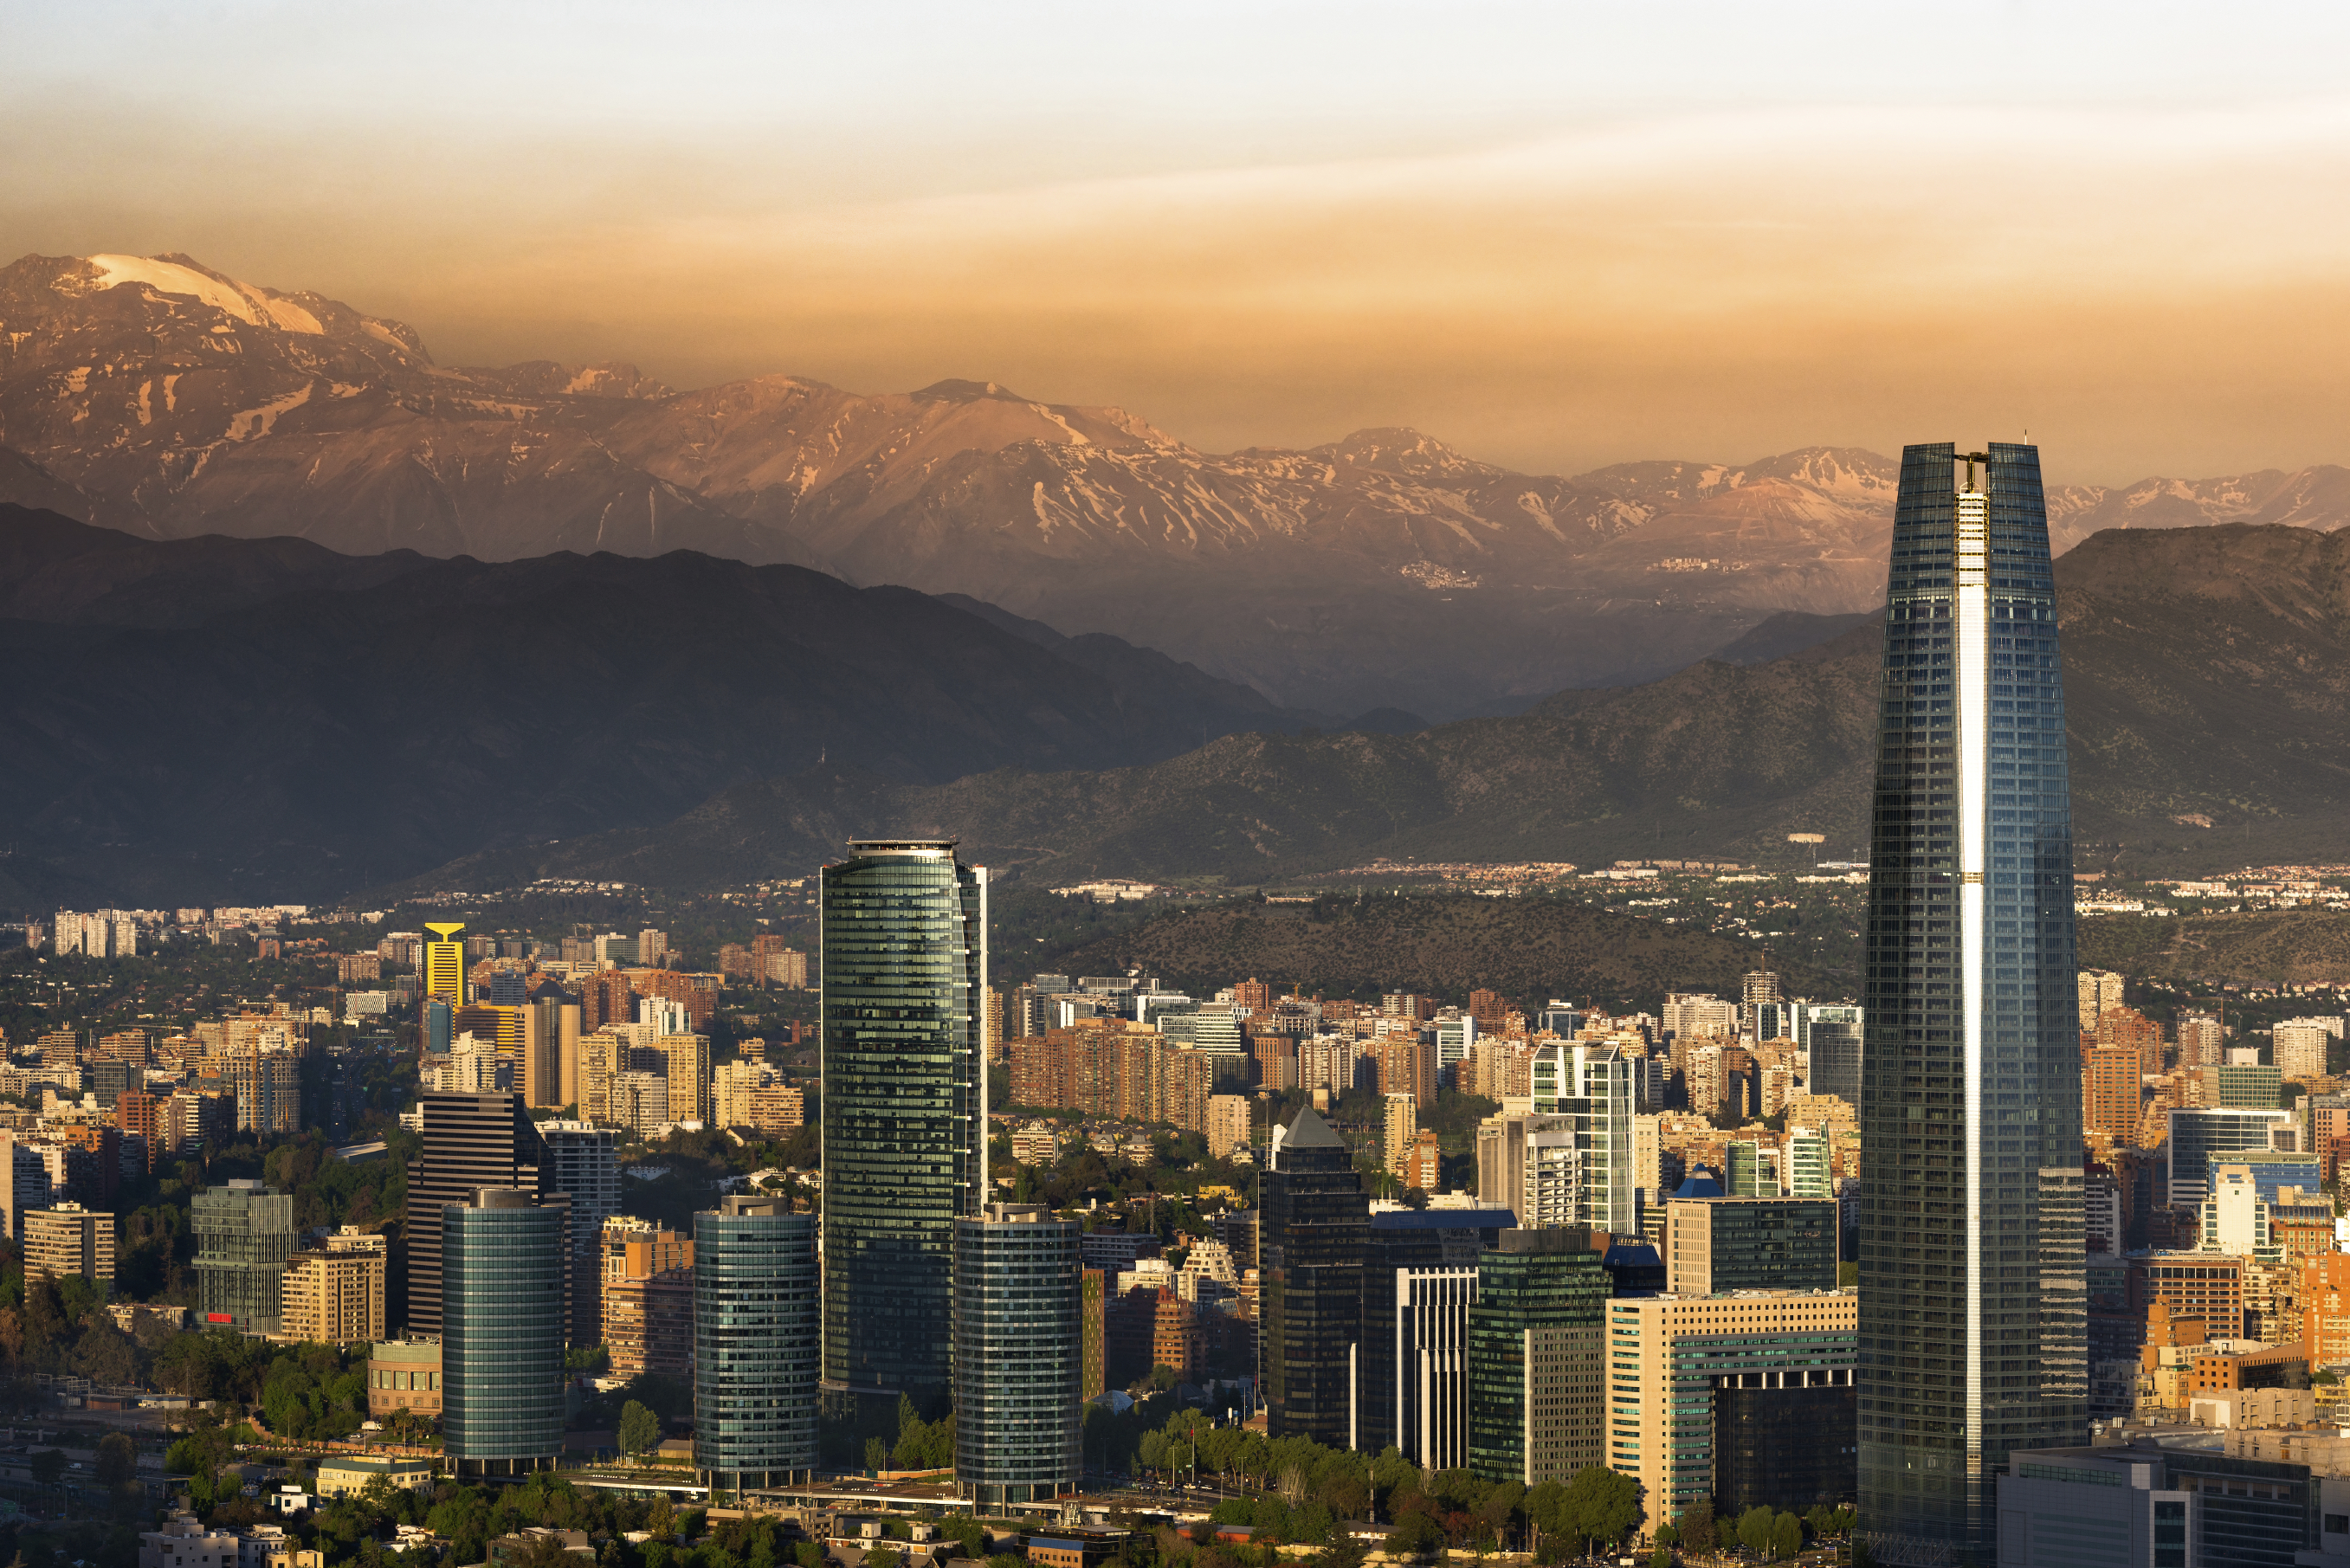 Santiago de Chile with Los Andes mountain range in the background (Getty Images)